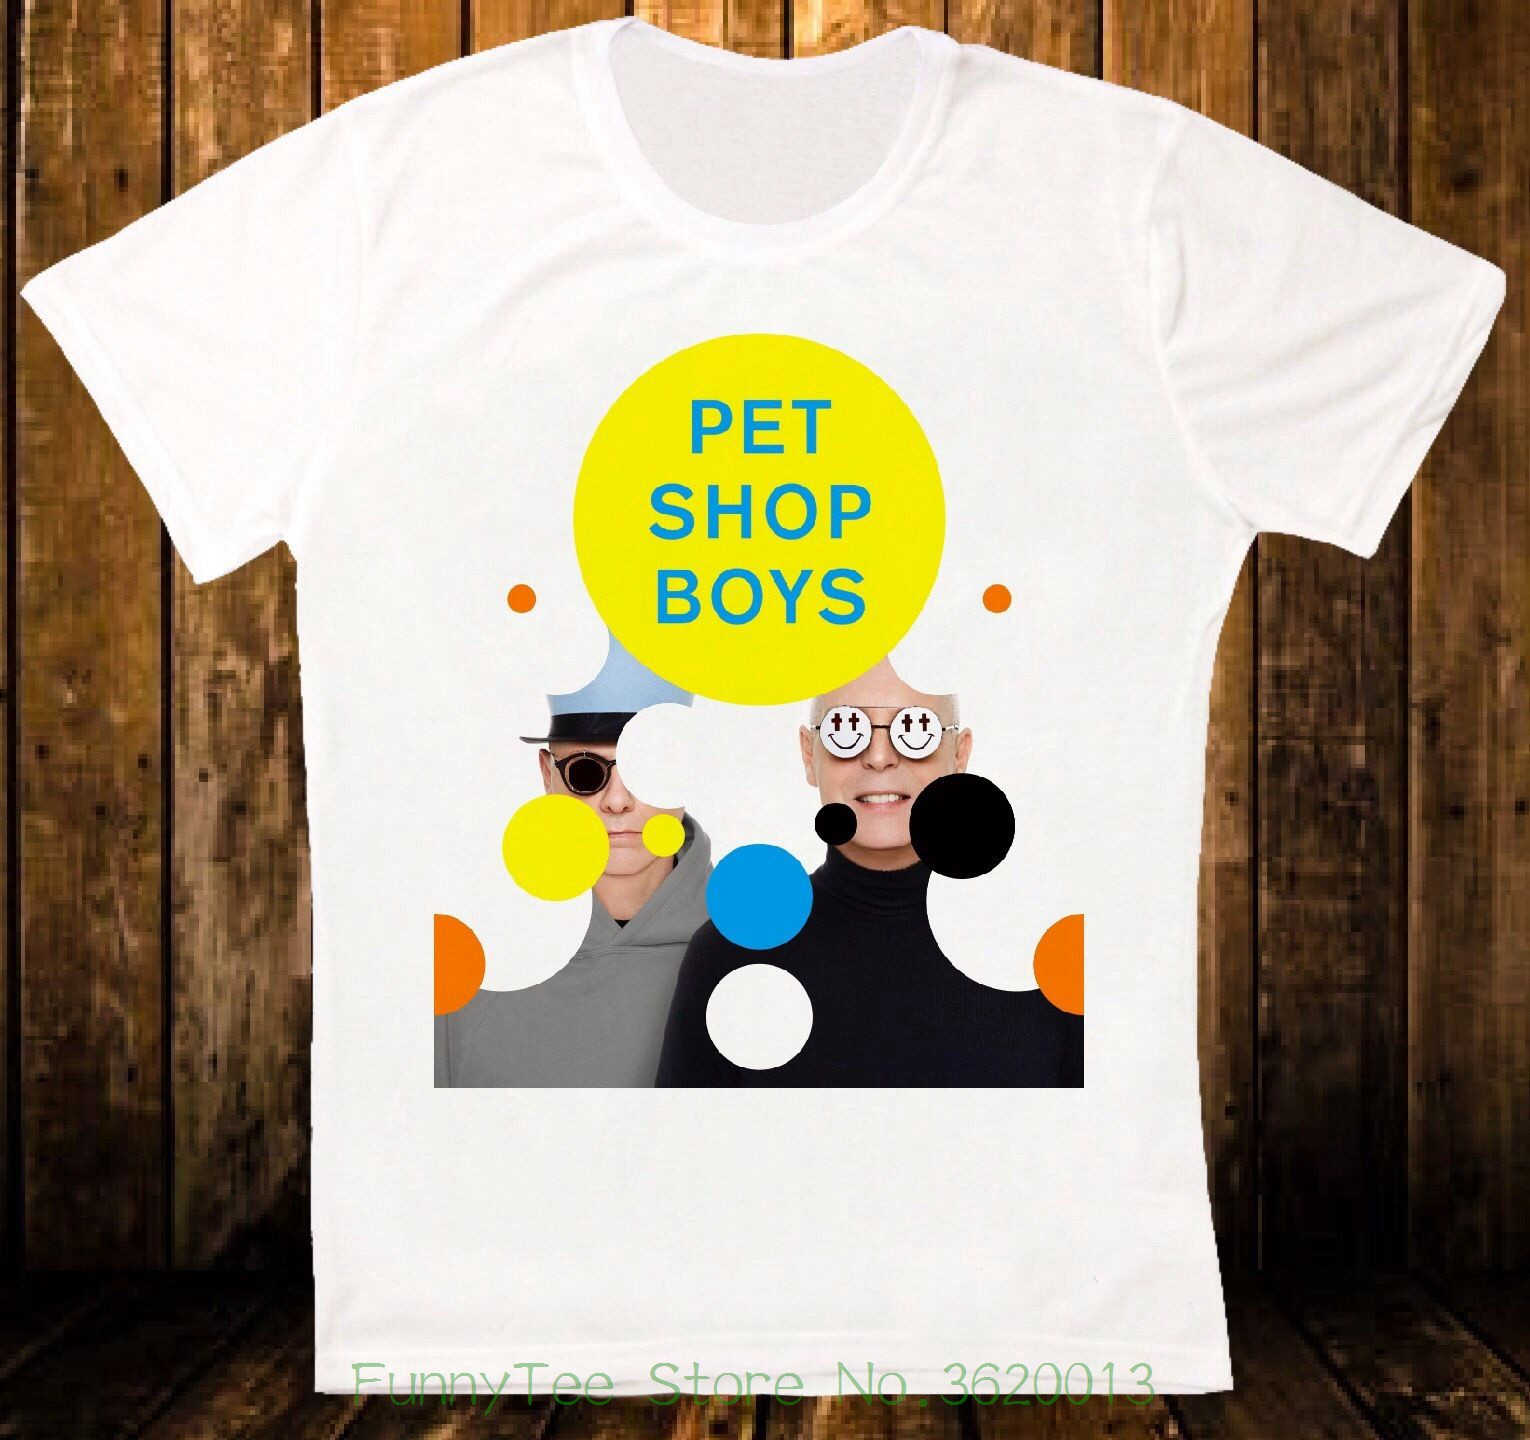 Pet Shop Boys Los S Per Tour 2017 Retro Vintage Hipster Camiseta Unisex 1025